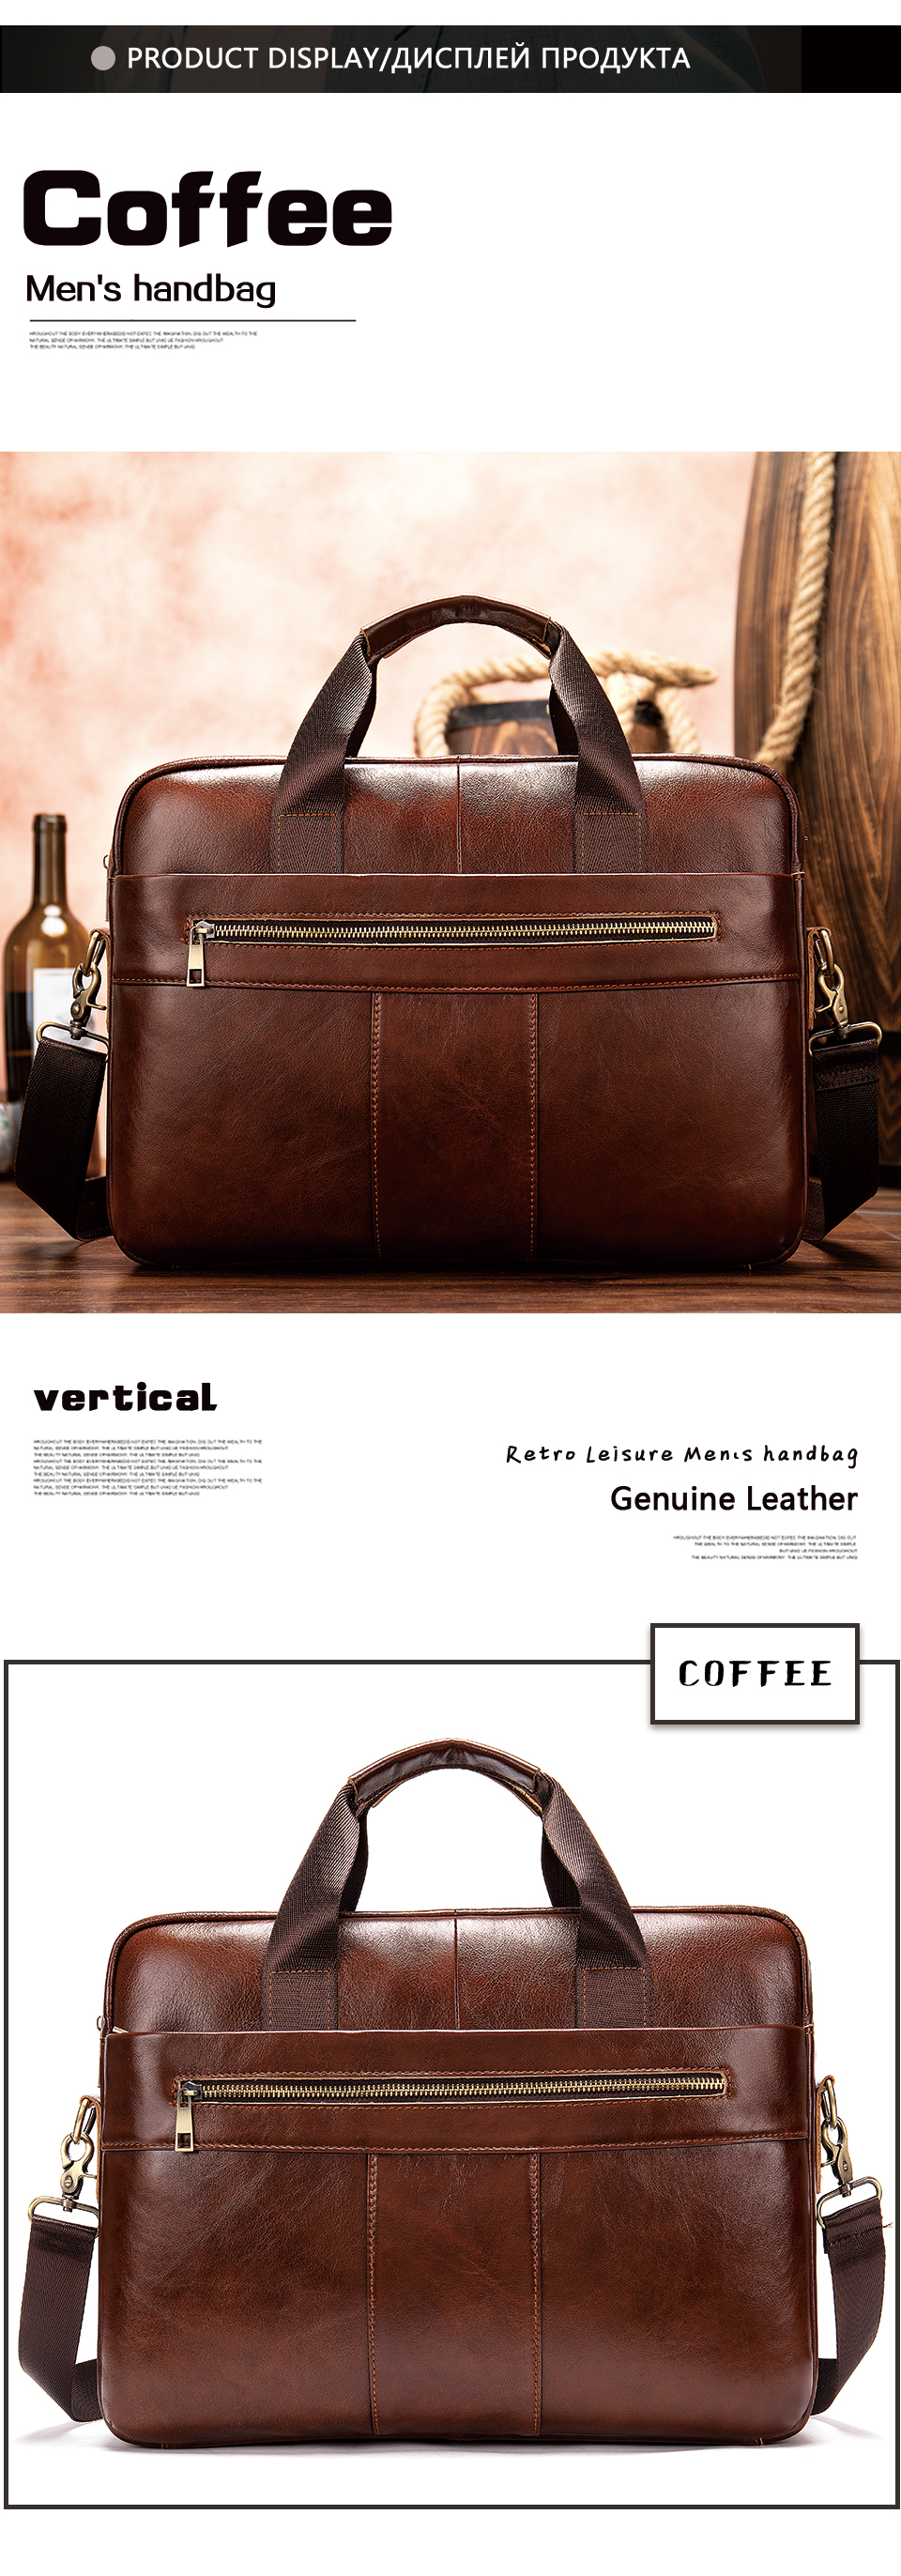 H7a3f4a6701344adf88022352851815a3f WESTAL Men's Briefcase Men's Bag Genuine Leather Laptop Bag Leather Computer/Office Bags for Men Document Briefcases Totes Bags